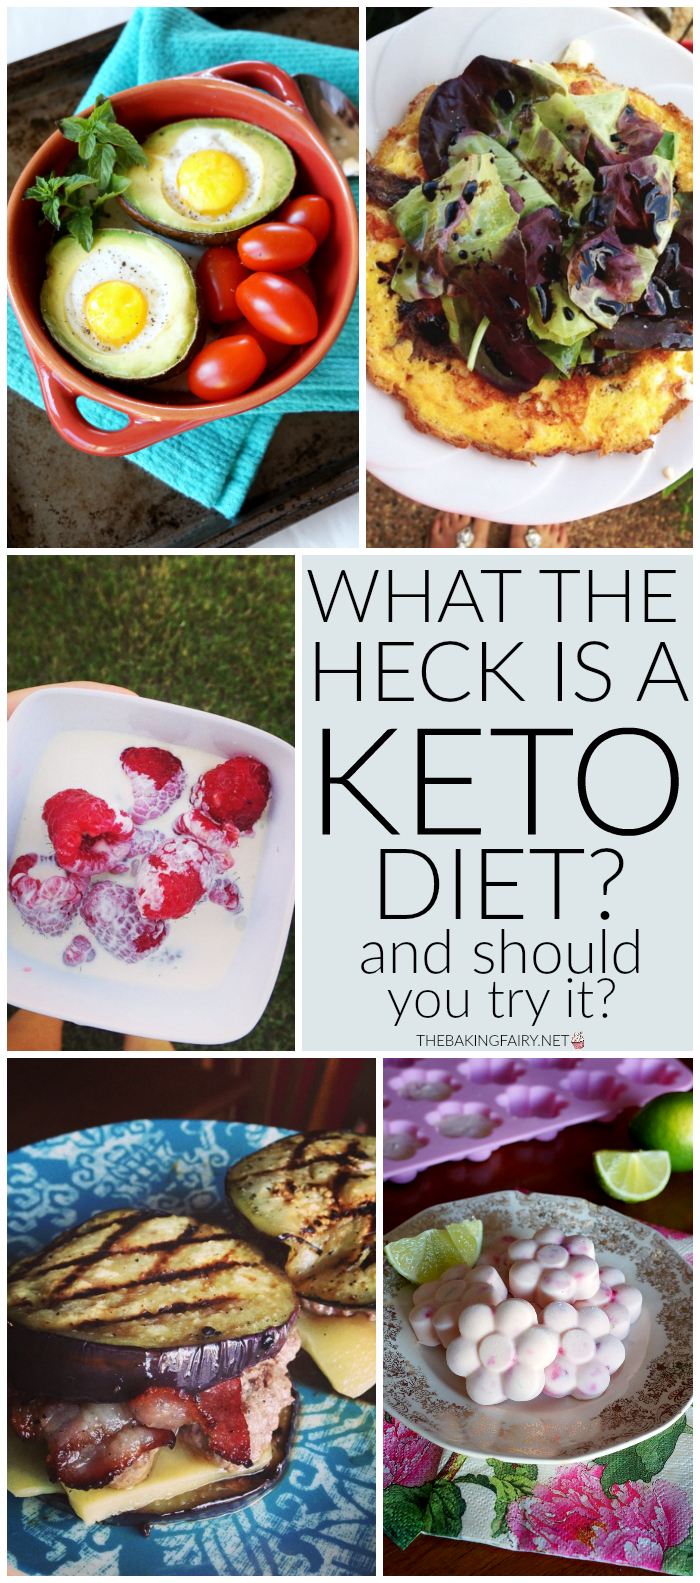 keto diet: a personal review | The Baking Fairy